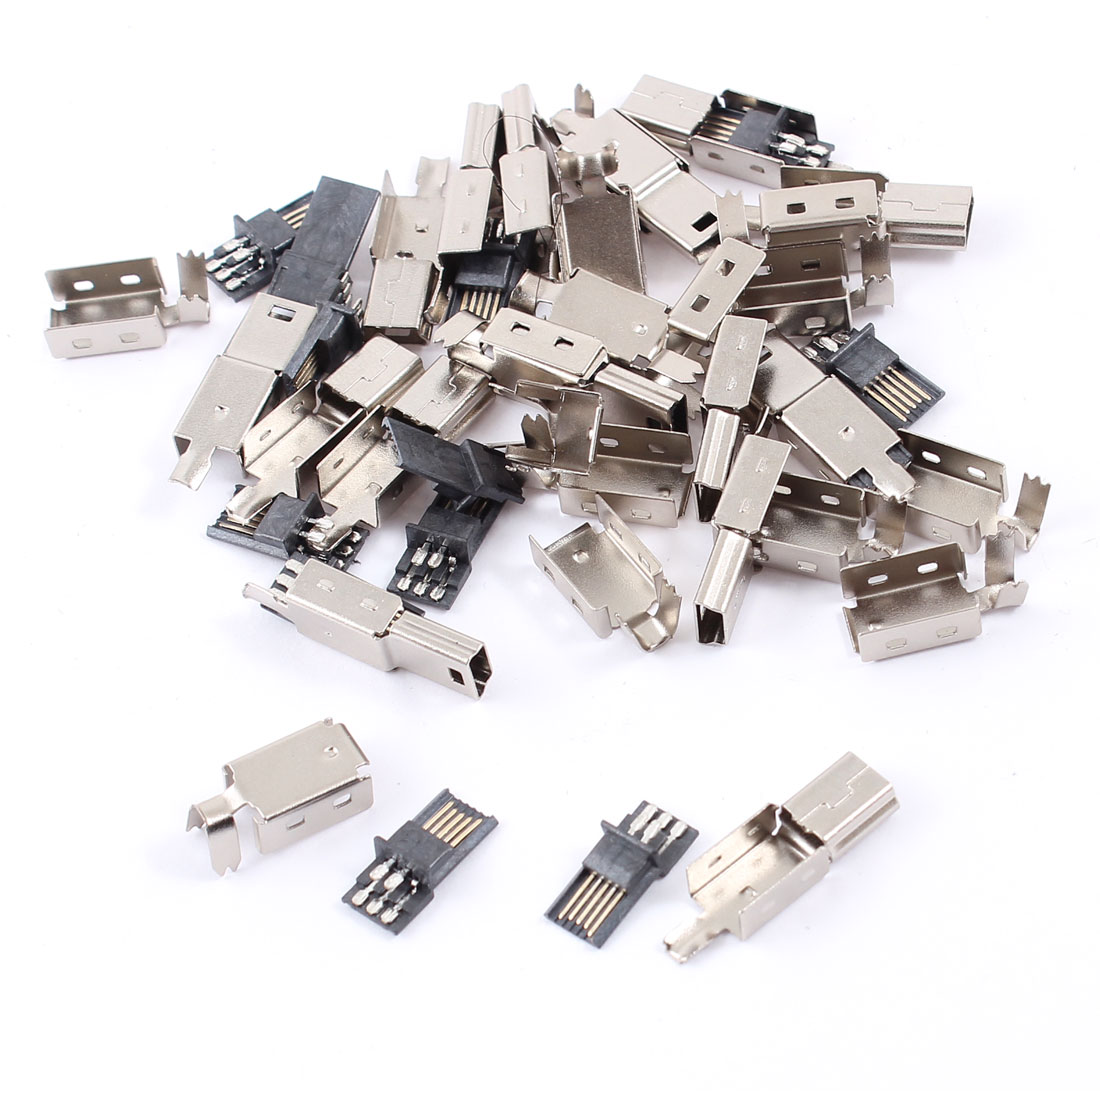 15pcs Mini USB 5 Pin Male Jack Connector Solder Adapter w Metal Cover